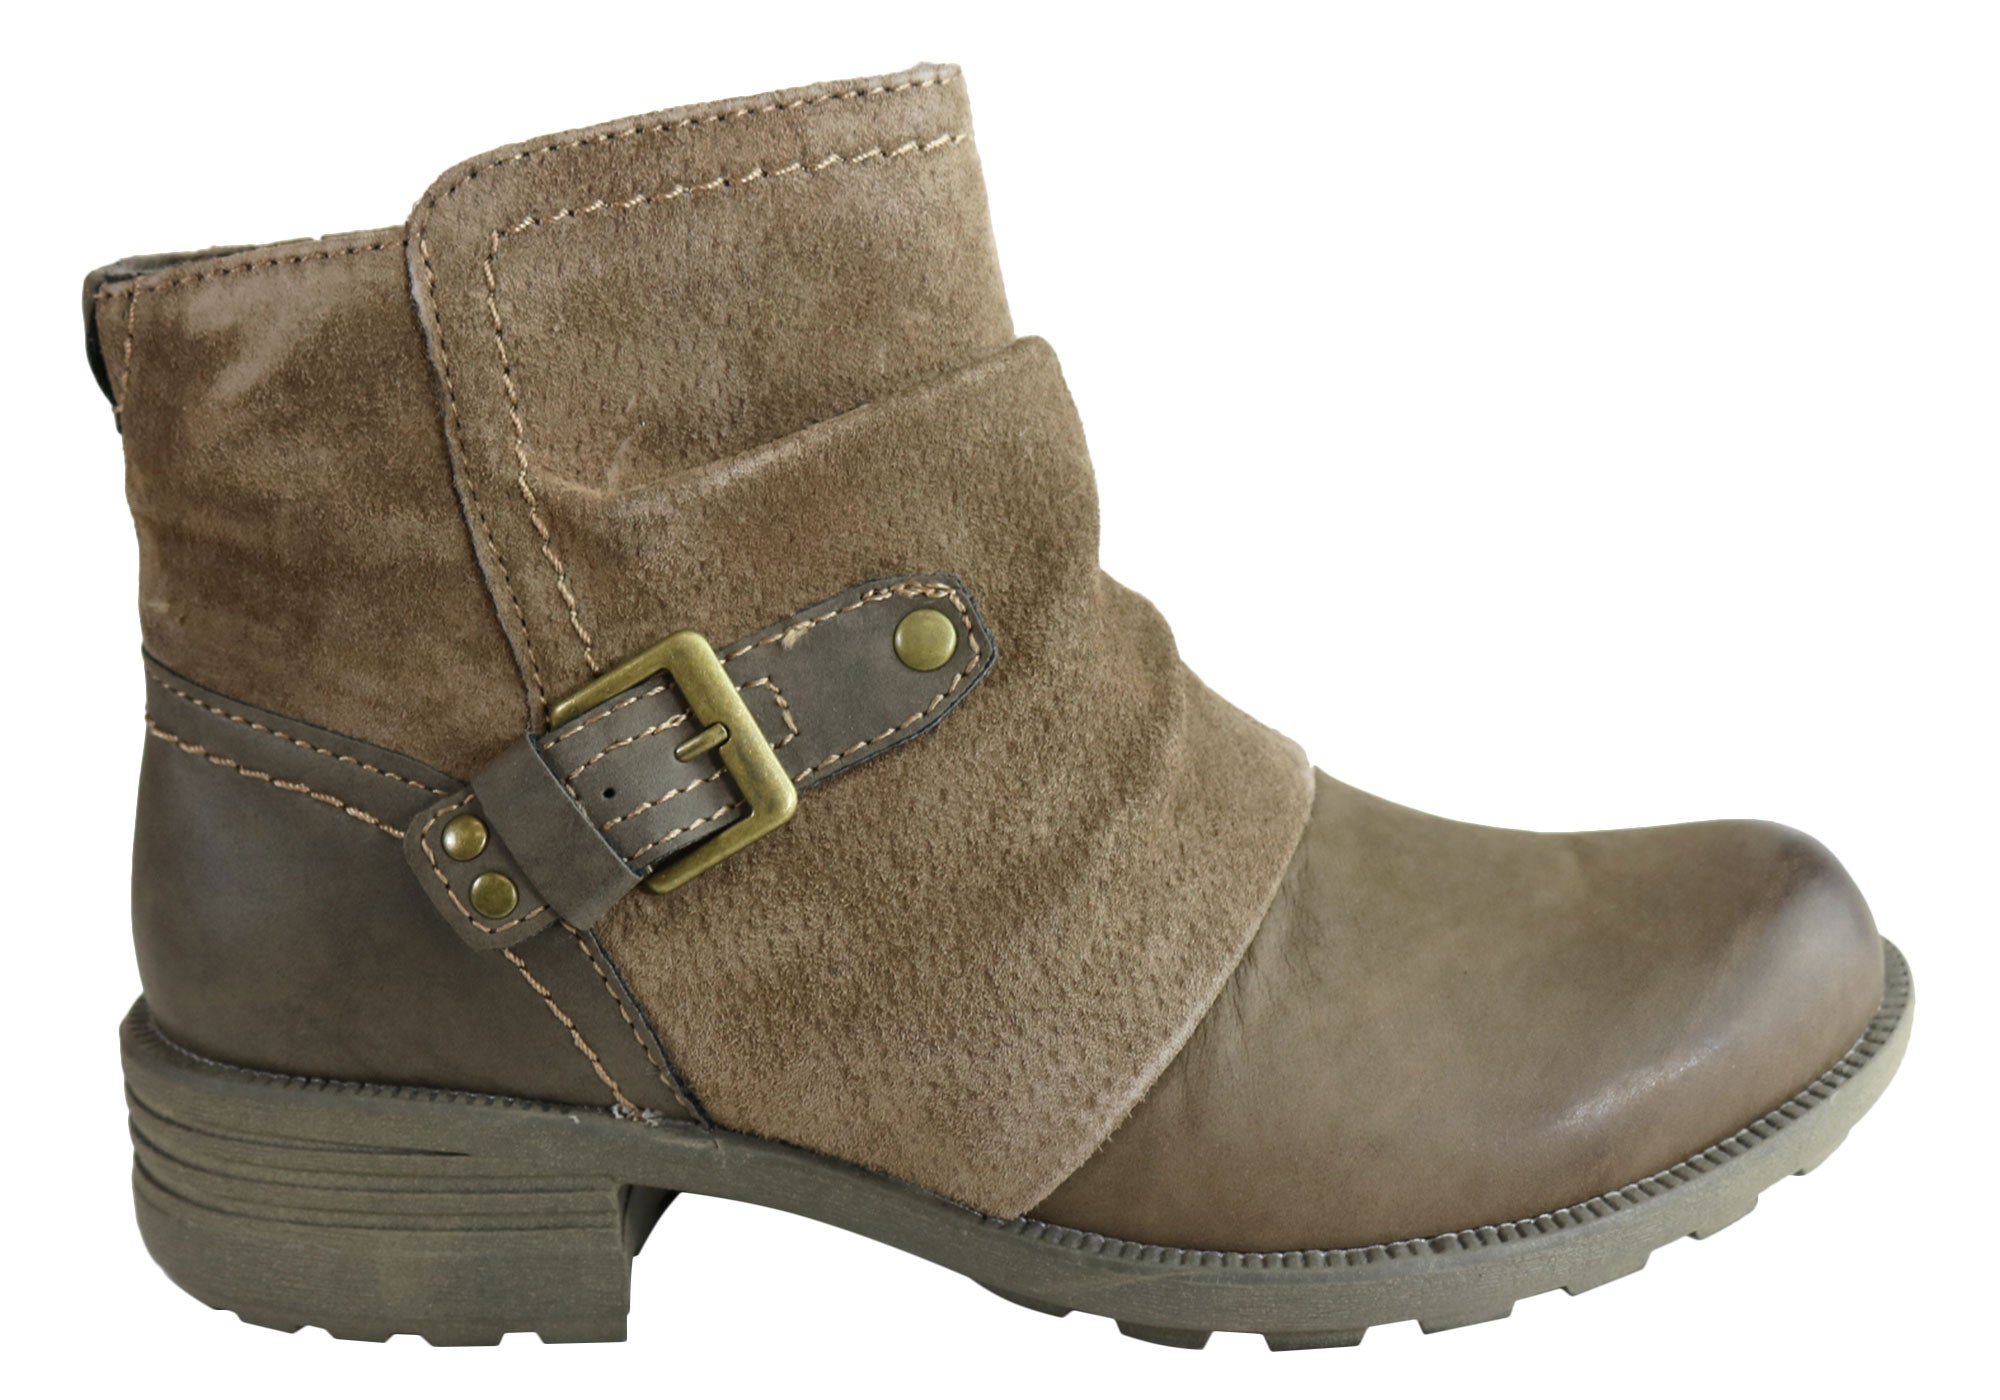 77af516ccf34 Home Planet Shoes Peyton Womens Comfy Leather Ankle Boots With Arch Support.  Stone ...